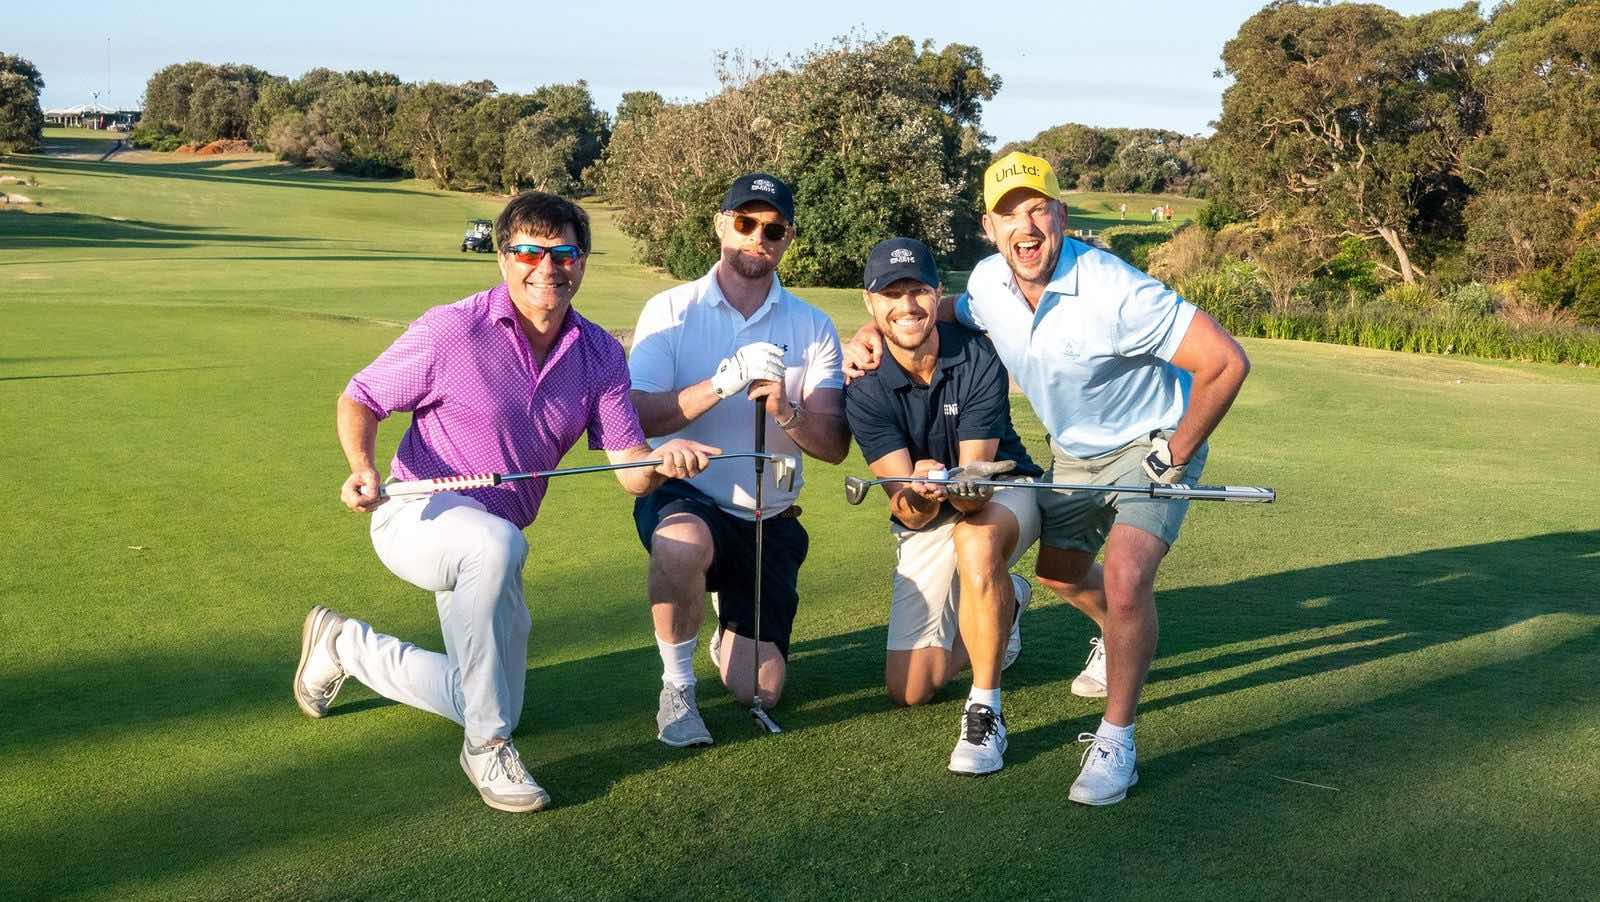 Industry swings for good at UnLtd Open raising $140,000 for youth at risk